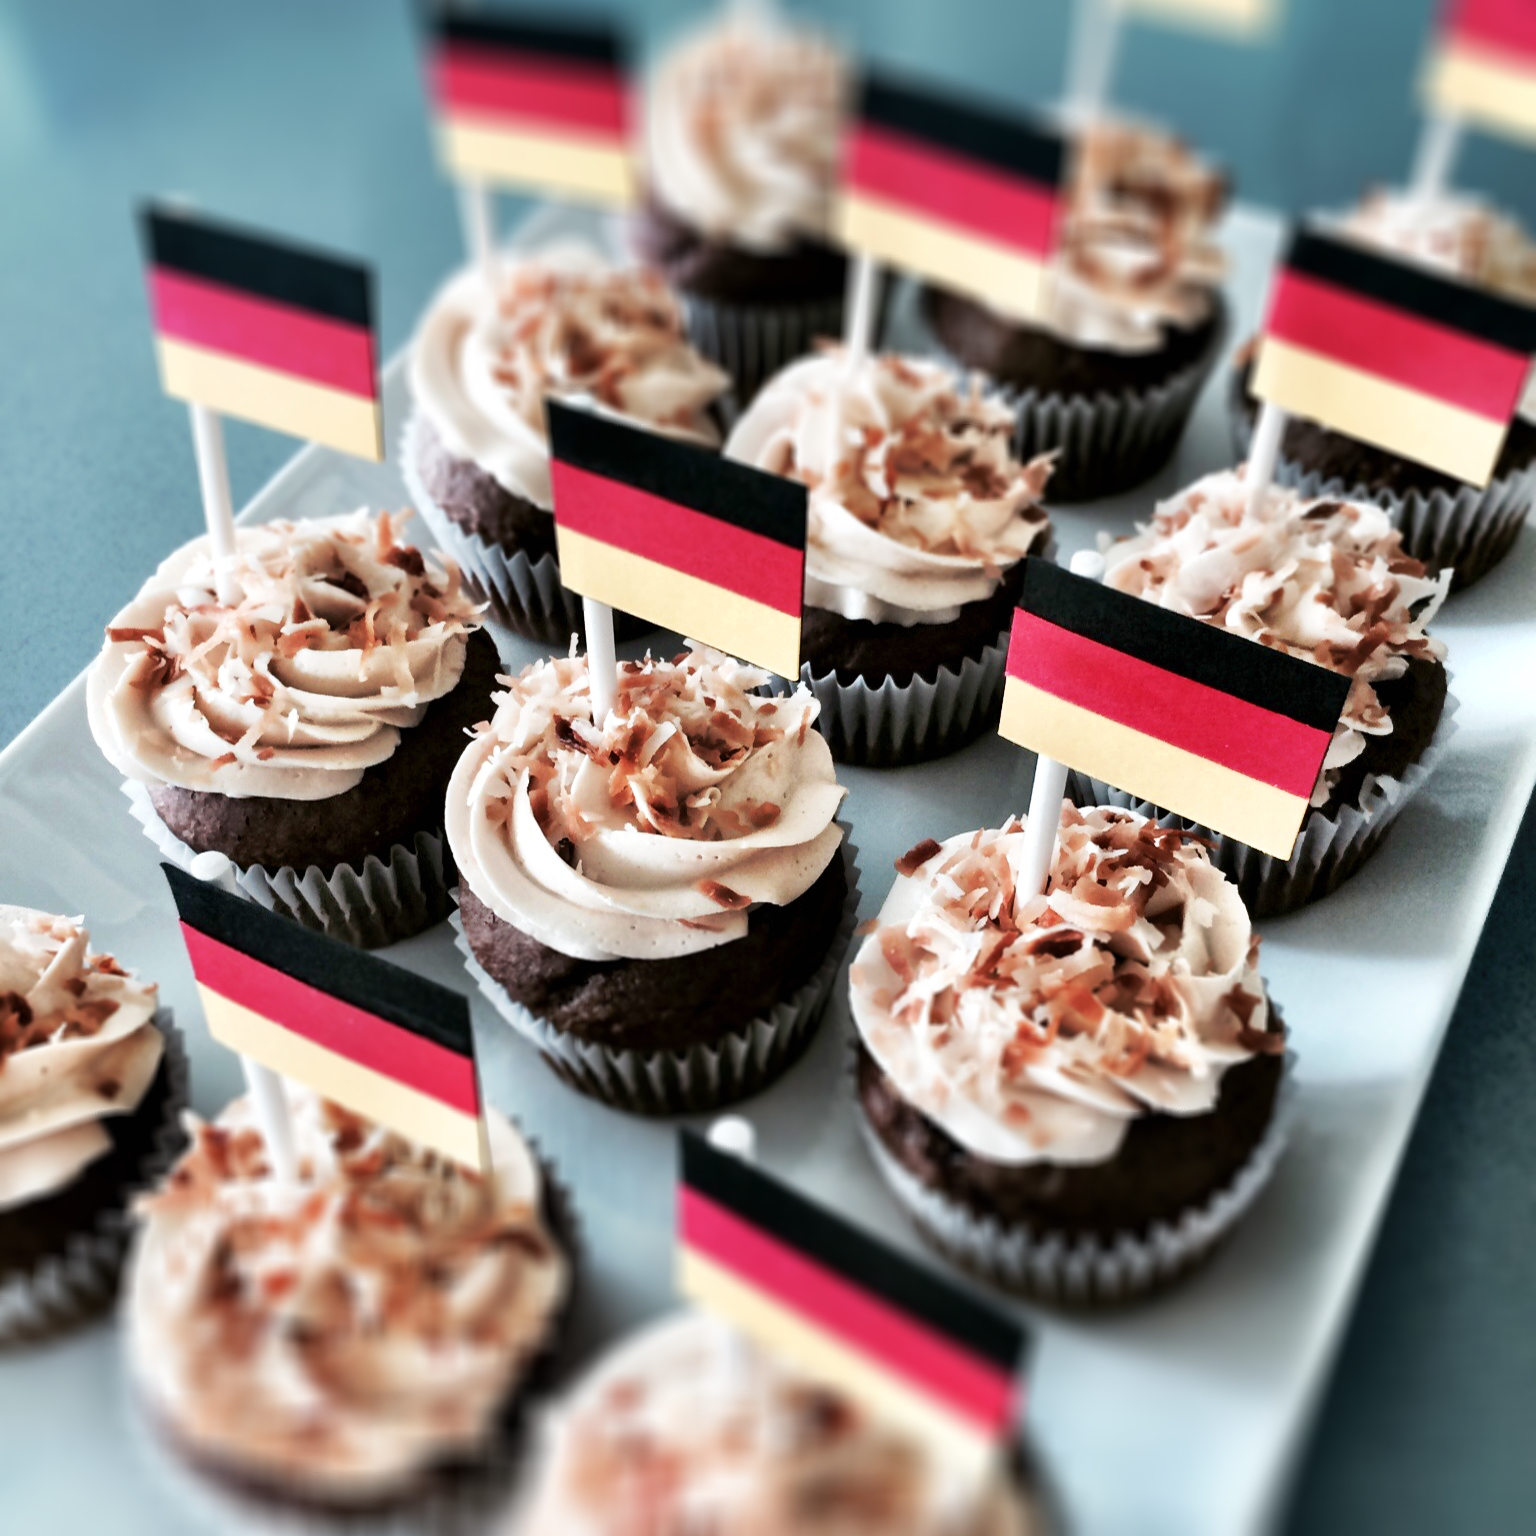 Rooting for Germany in the 2014 World Cup final